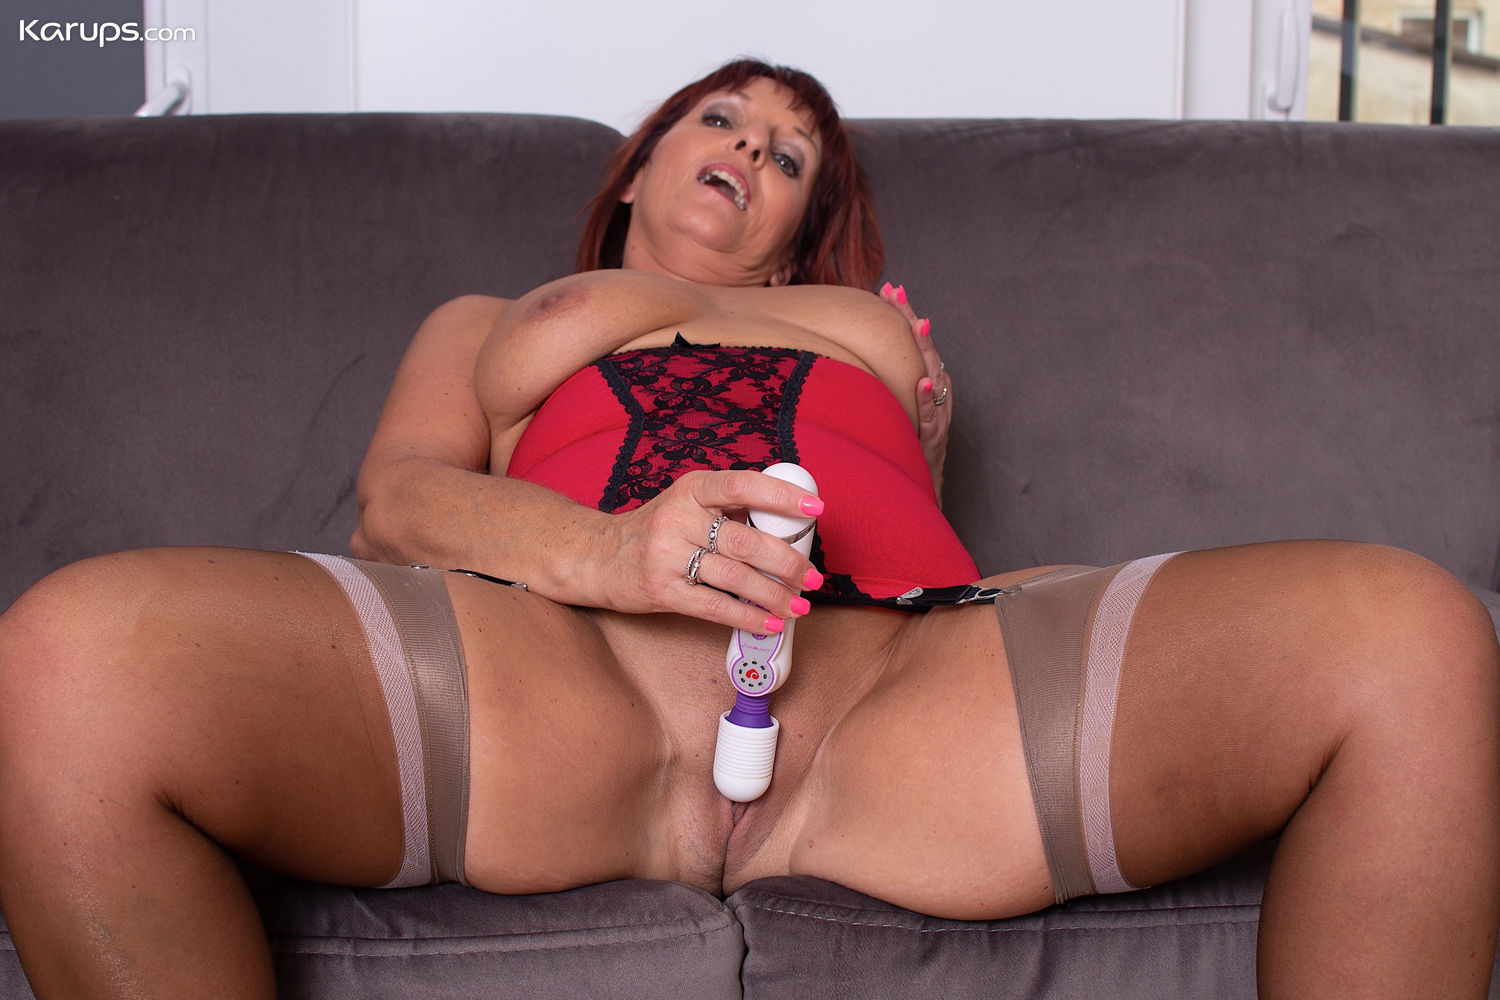 Redhead milf granny Karup pornstar Beau Diamond masturbates in stockings and corsets toying shav ...